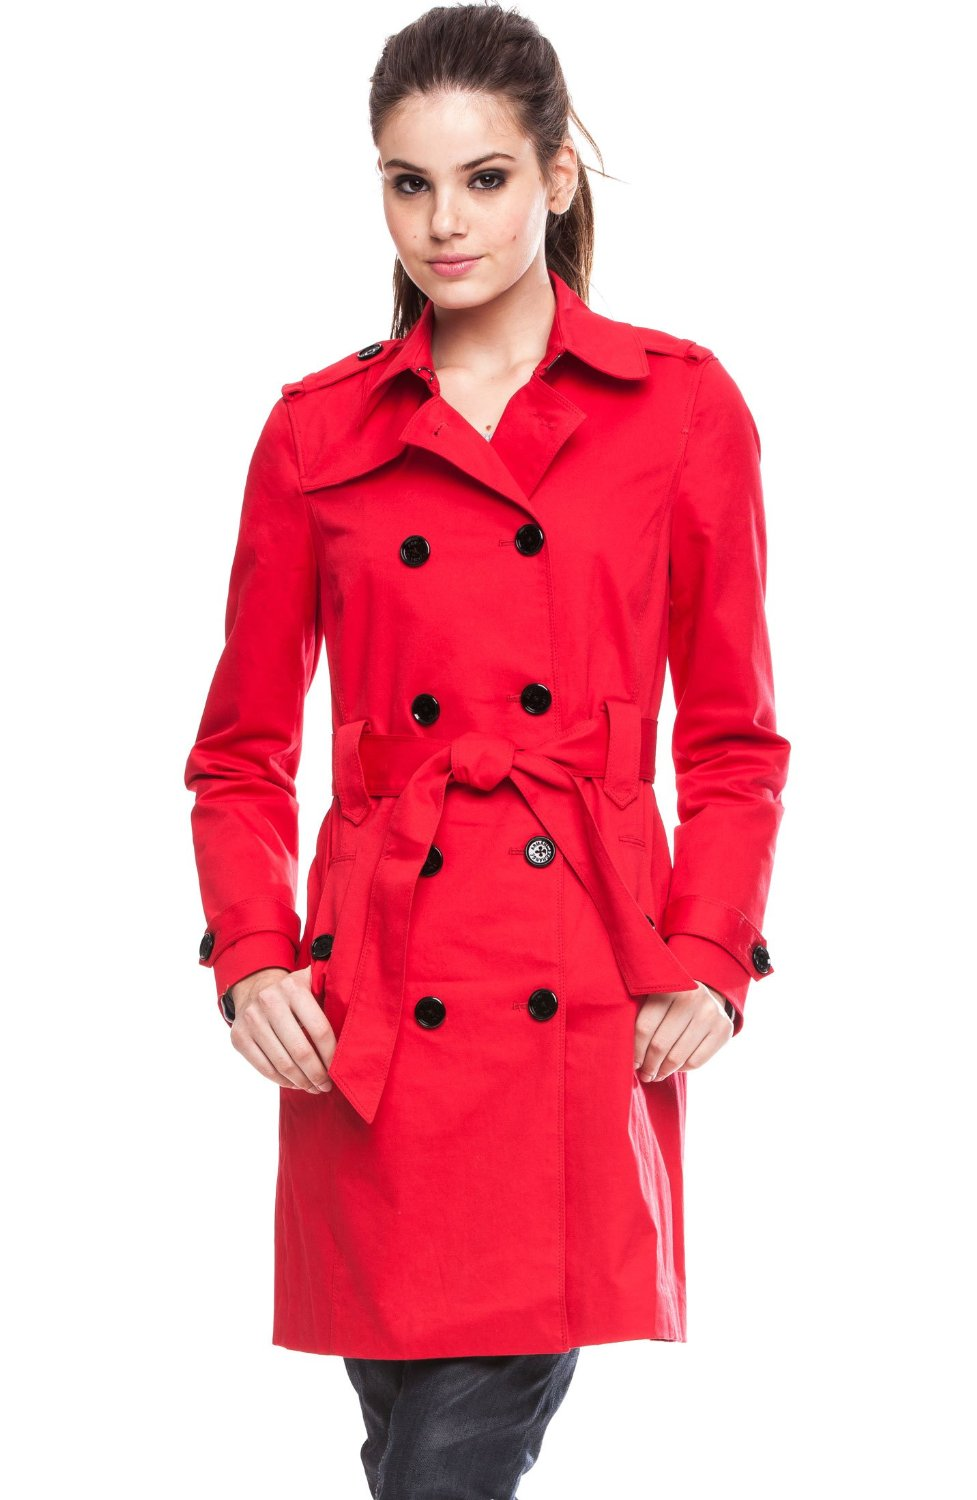 Sylvia and her classic red trench coat from Armani Exchange